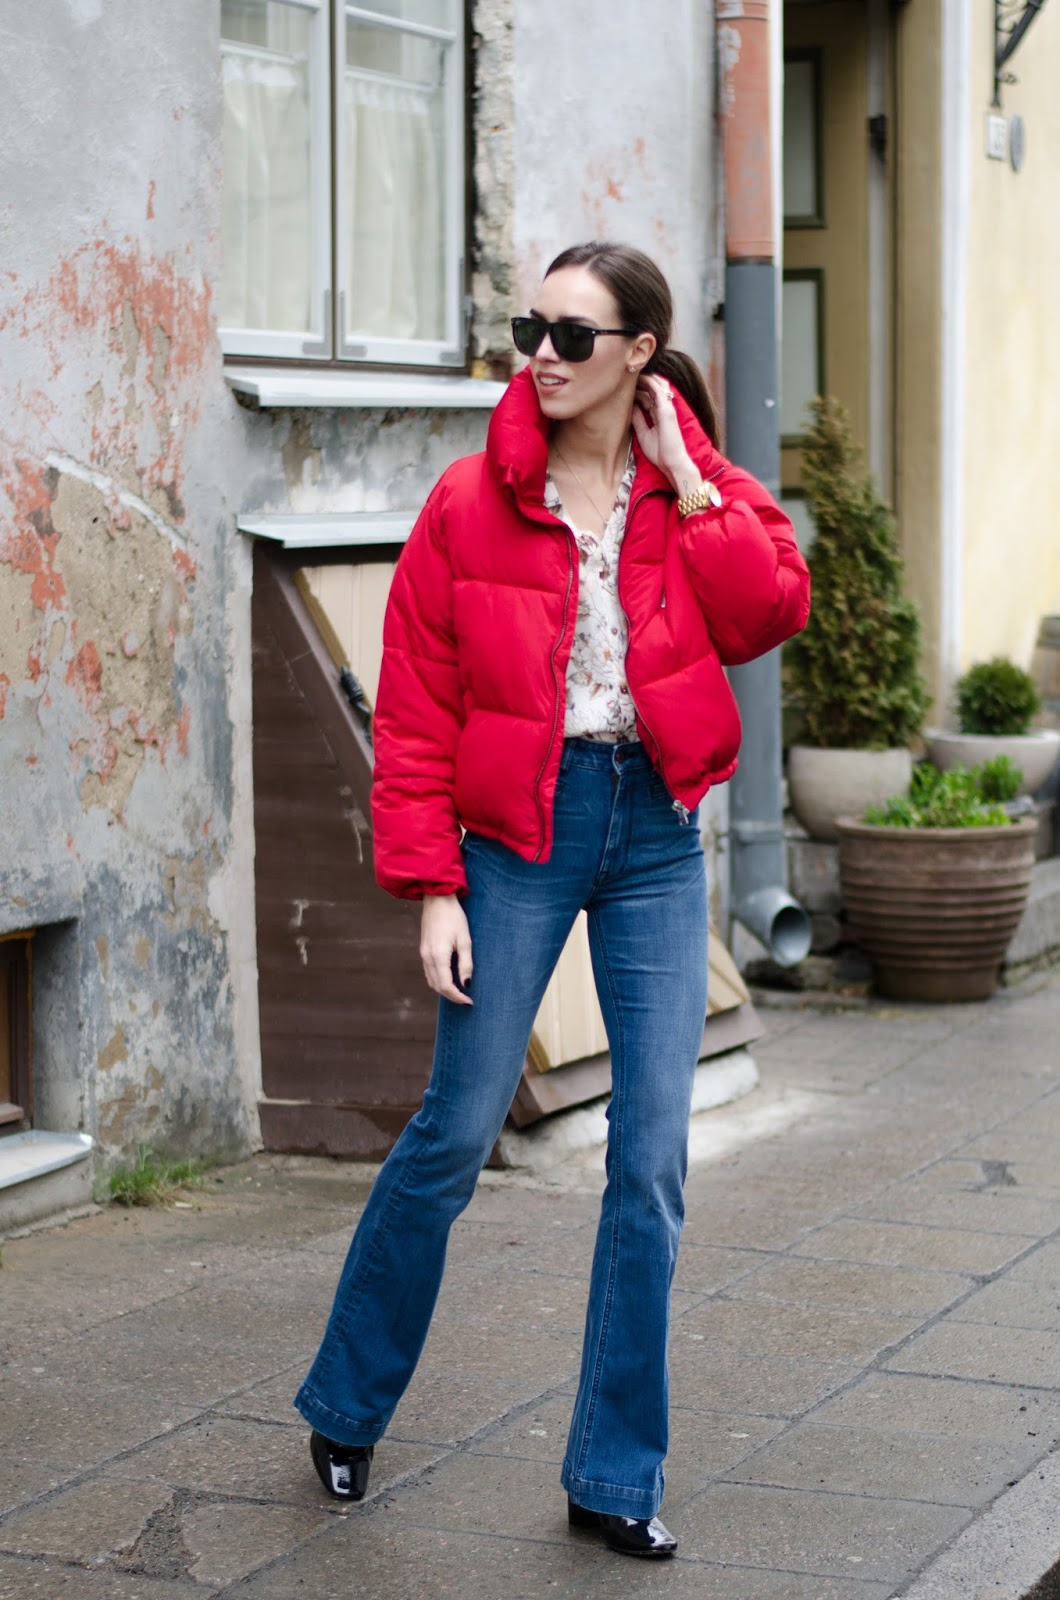 puffy jacket outfit winter